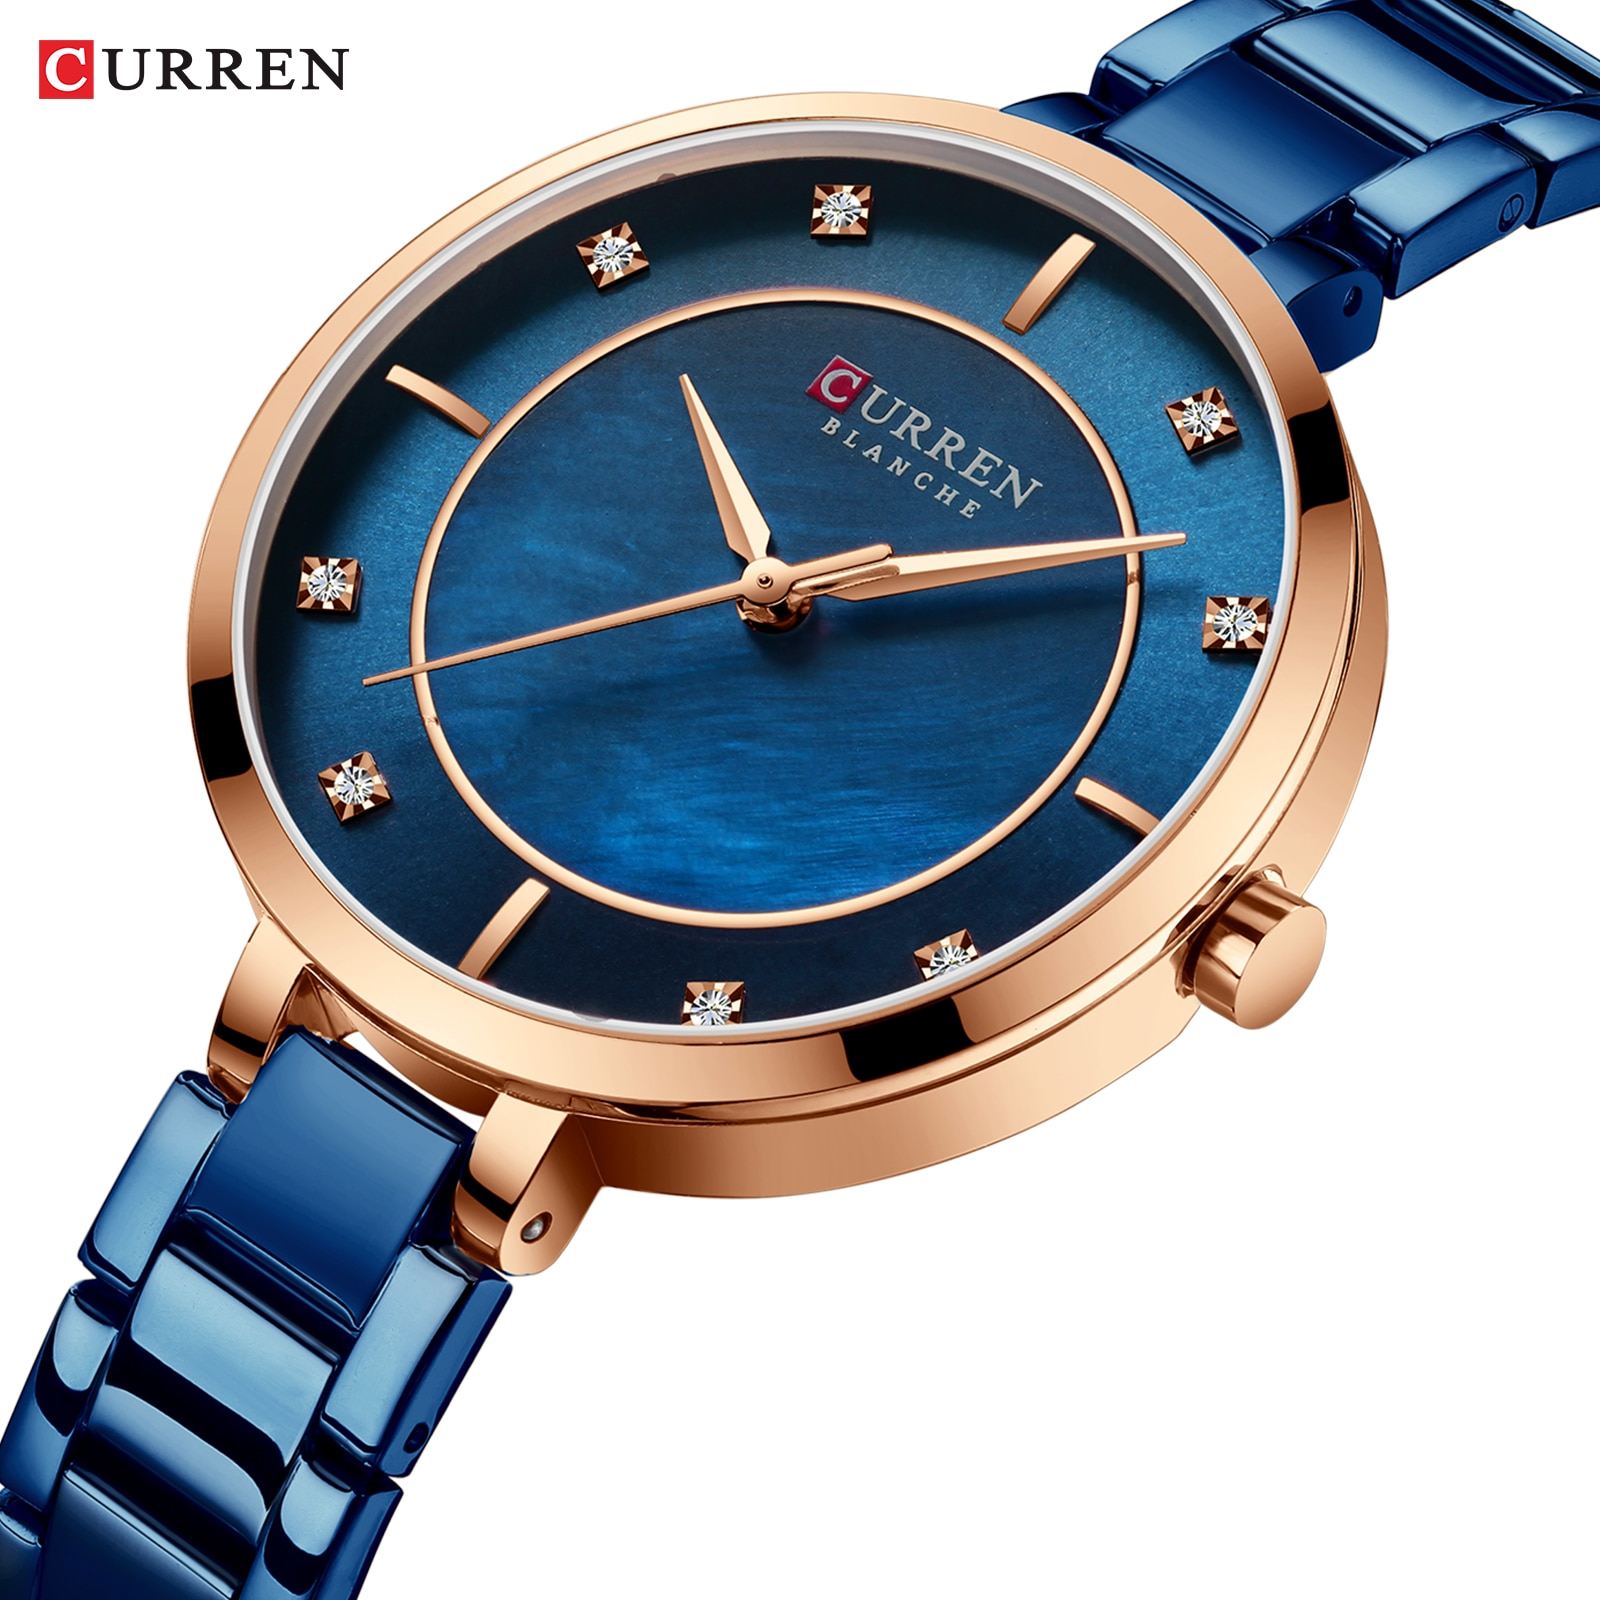 CURREN Fashion Ladies Watch Blue Stainless Steel Bracelet Rhinestone Diamond Quartz Waterproof Female Watches Clock Montre Femme